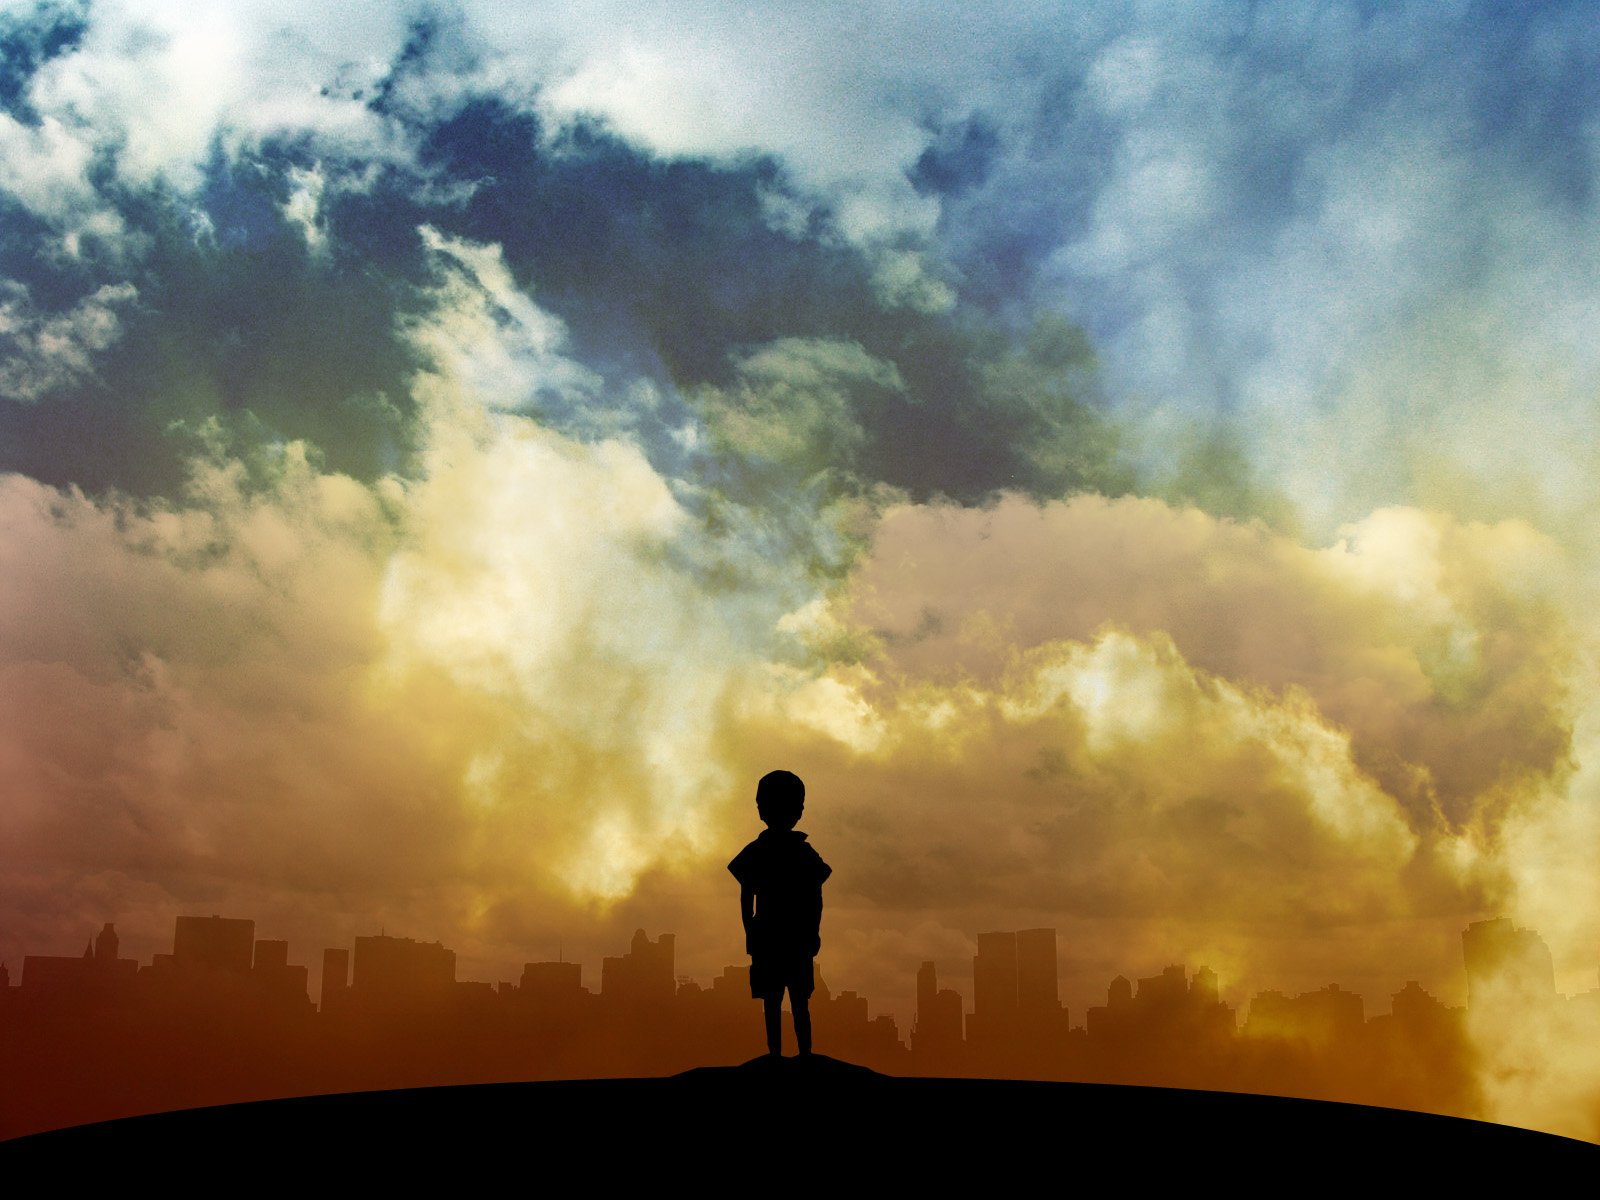 Artistic - Human  Child Wallpaper